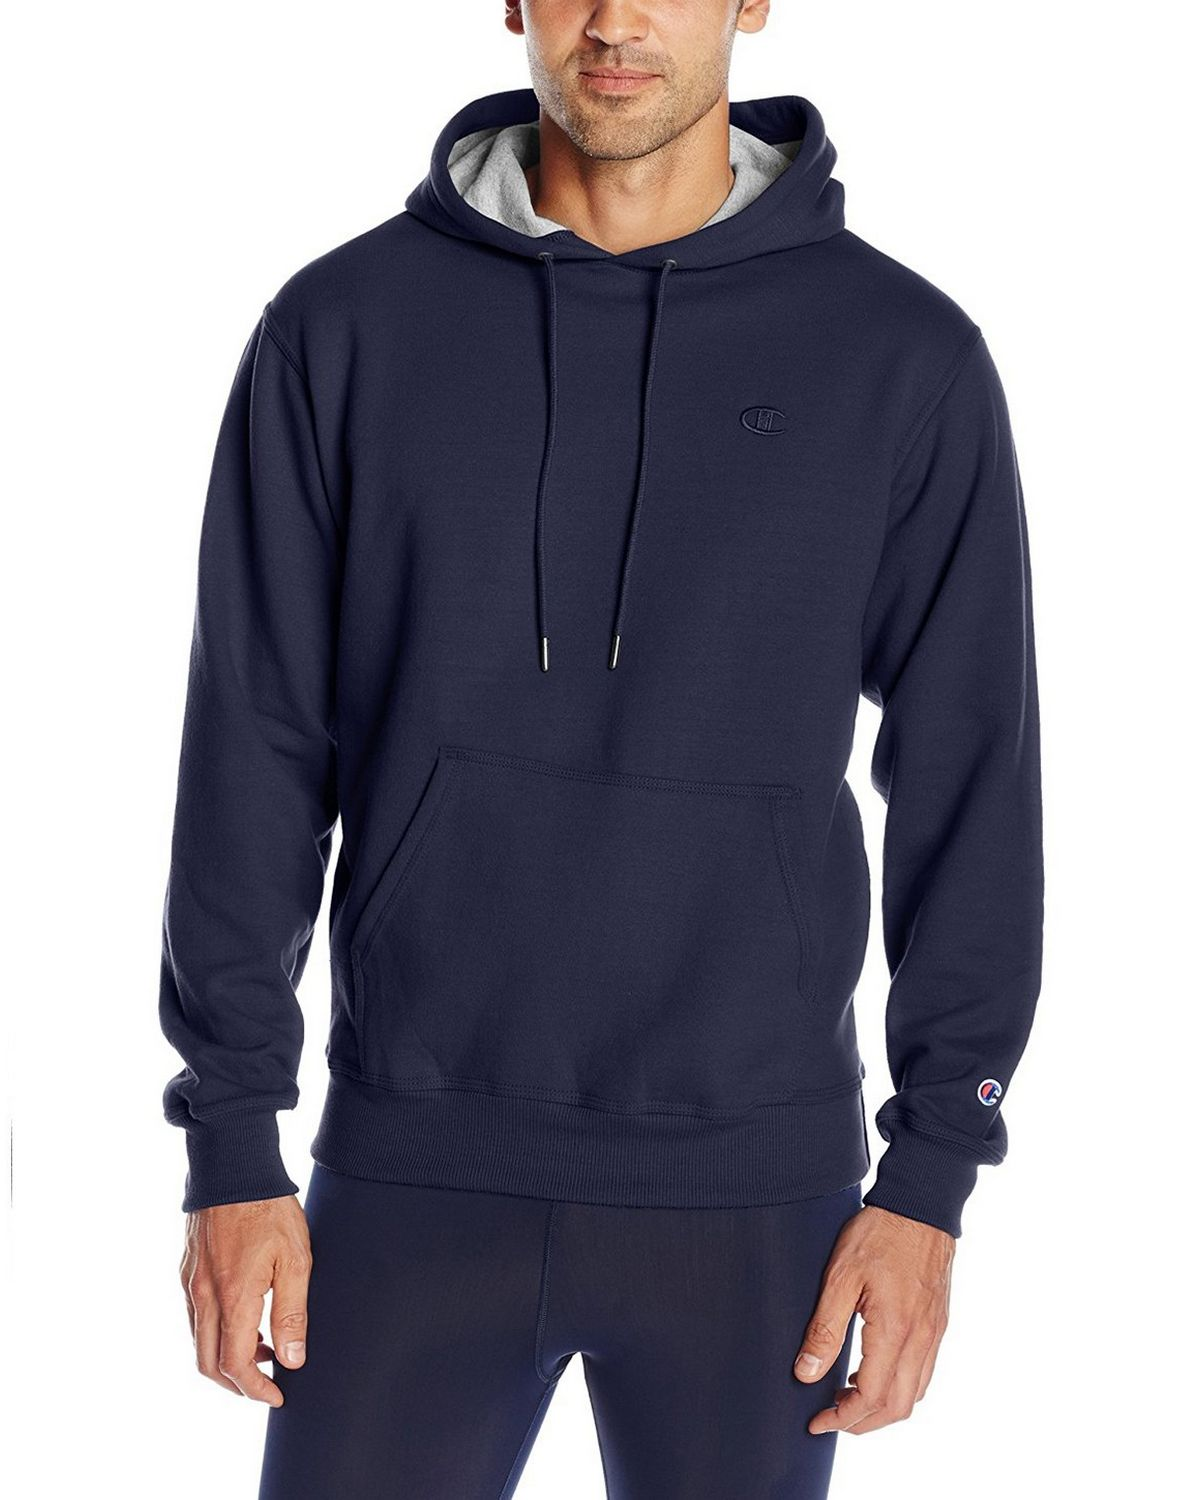 Champion S0889 Mens Fleece Pullover Hoodie - Navy - XL S0889